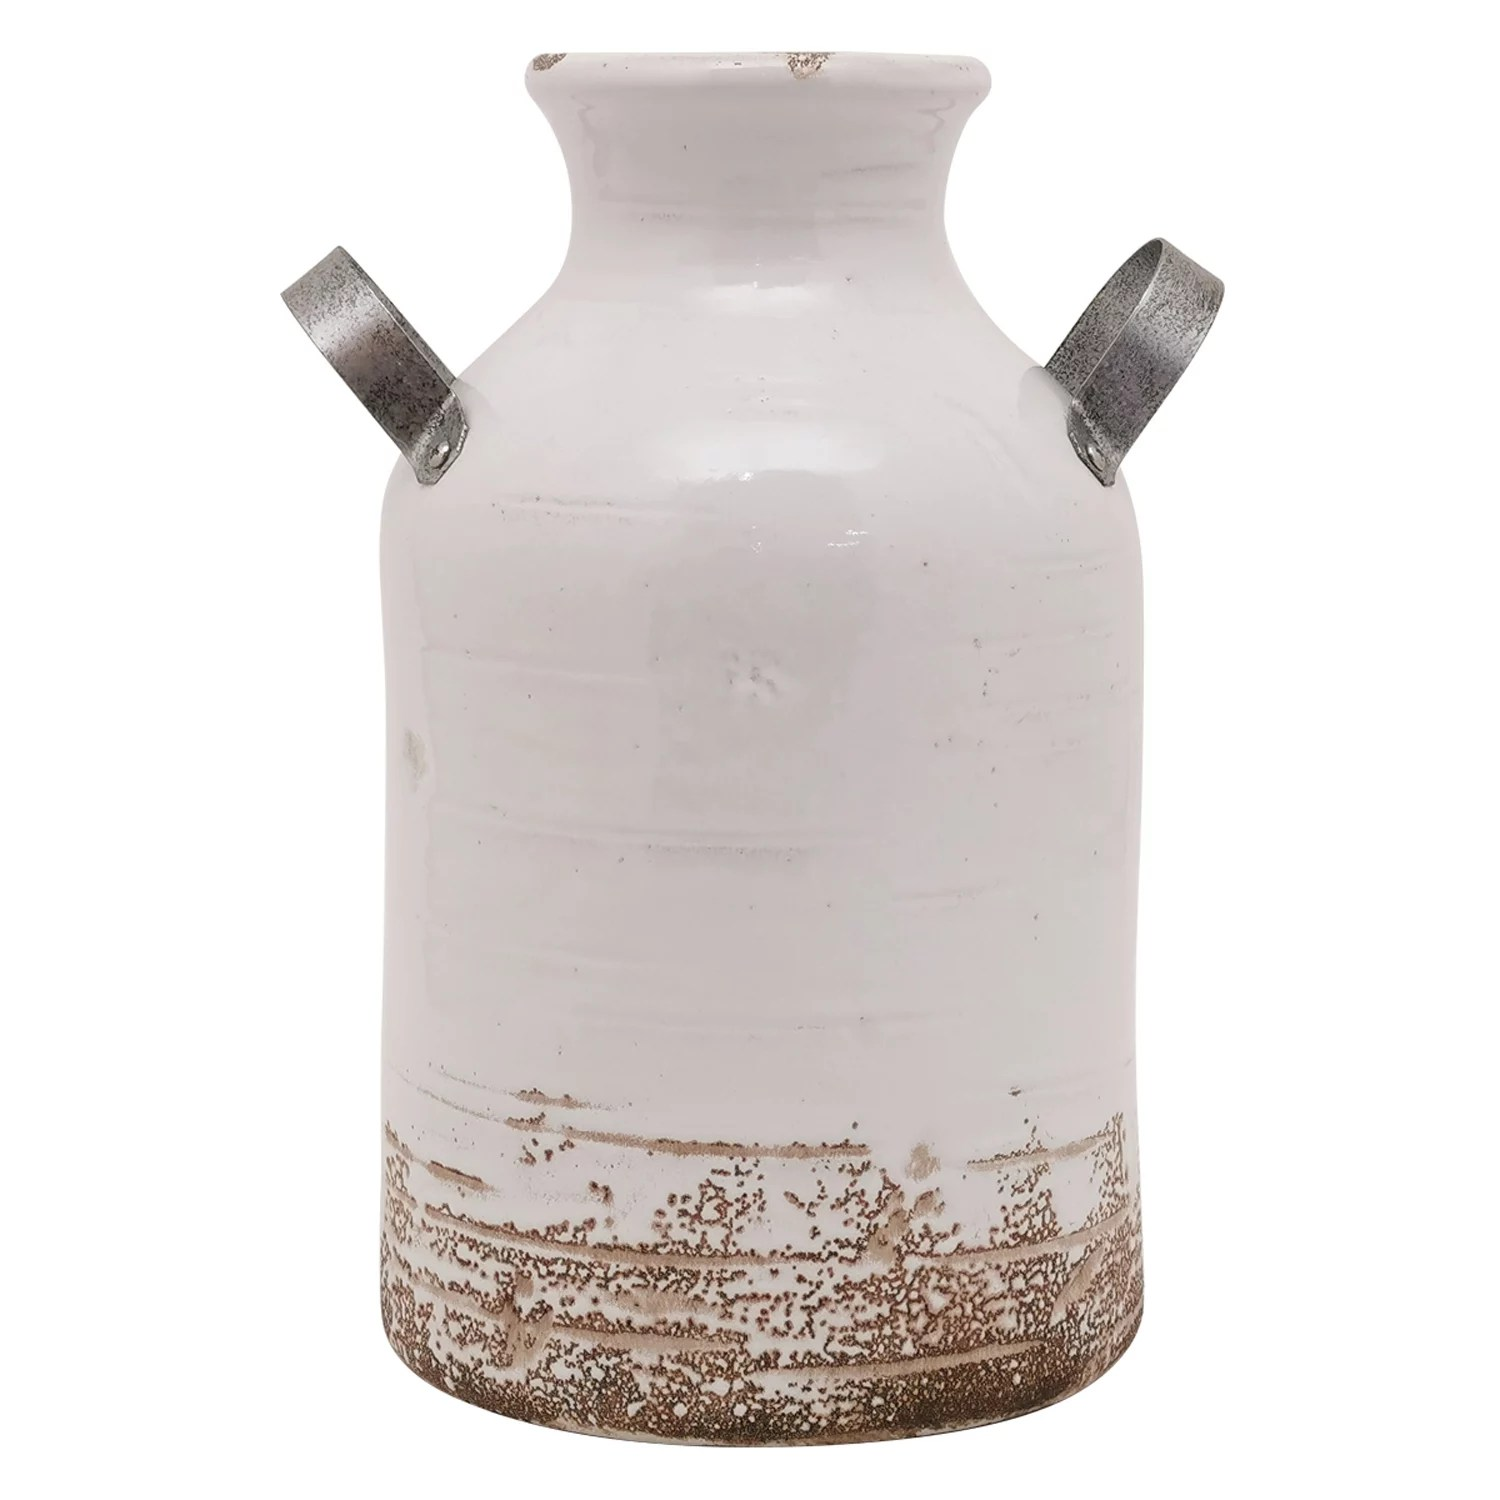 Decorative Milk Urn Sonoma Goods For Life Farmhouse Milk Can Ceramic Vase